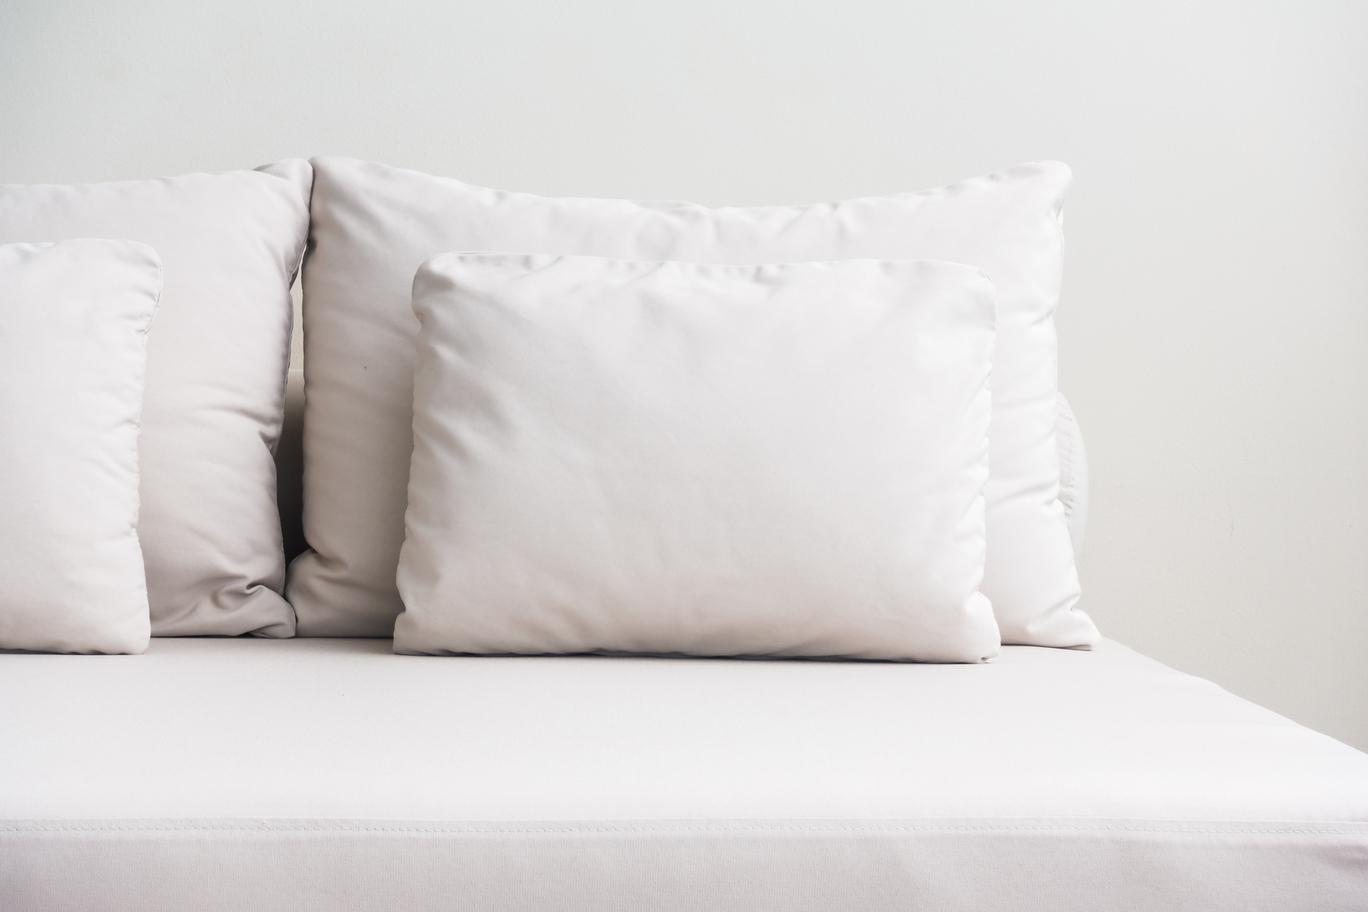 white latex pillows against each other on white sofa